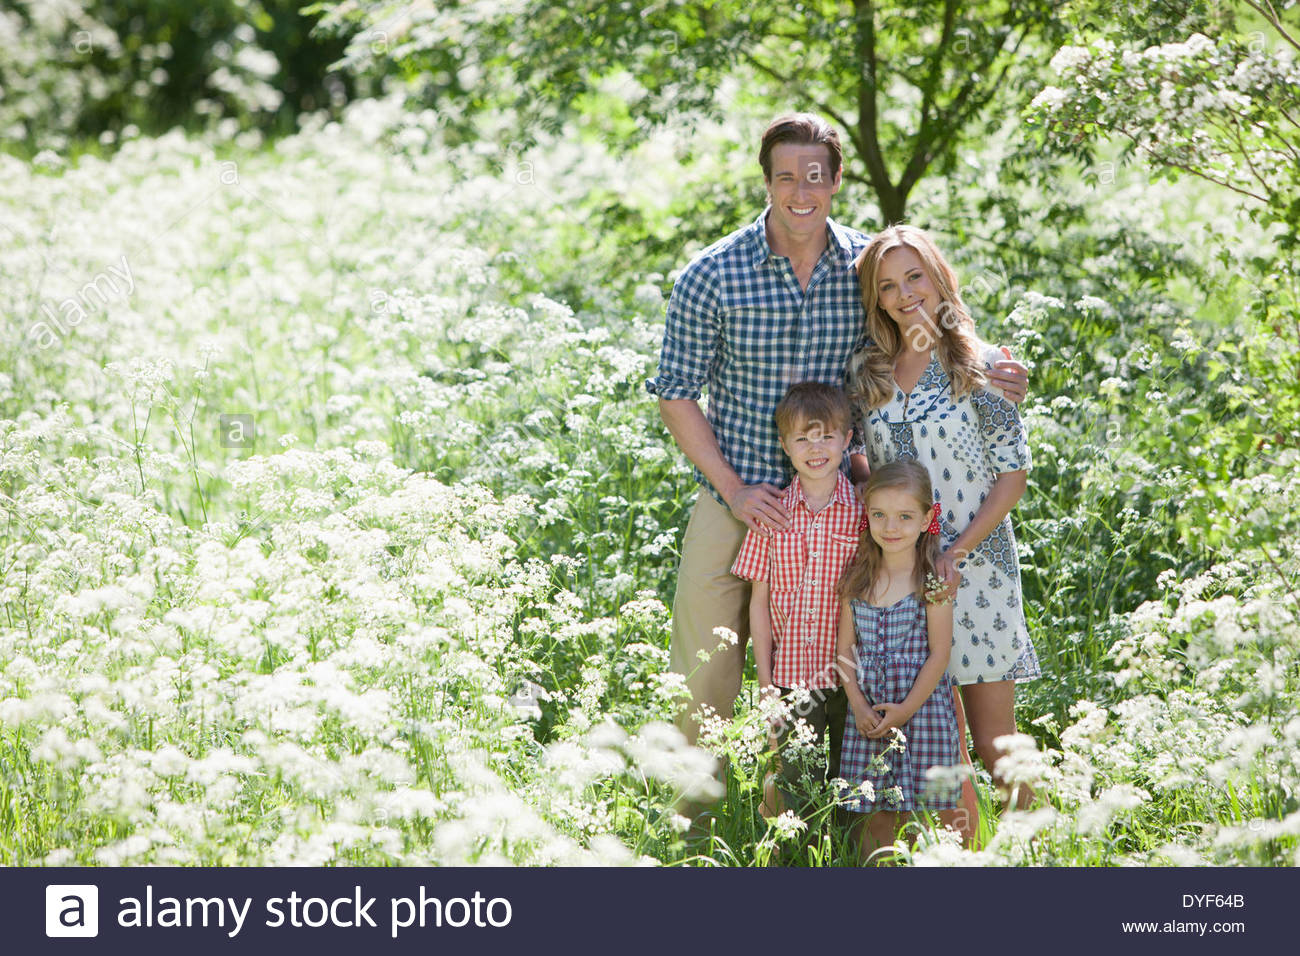 Family standing together in field of flowers - Stock Image